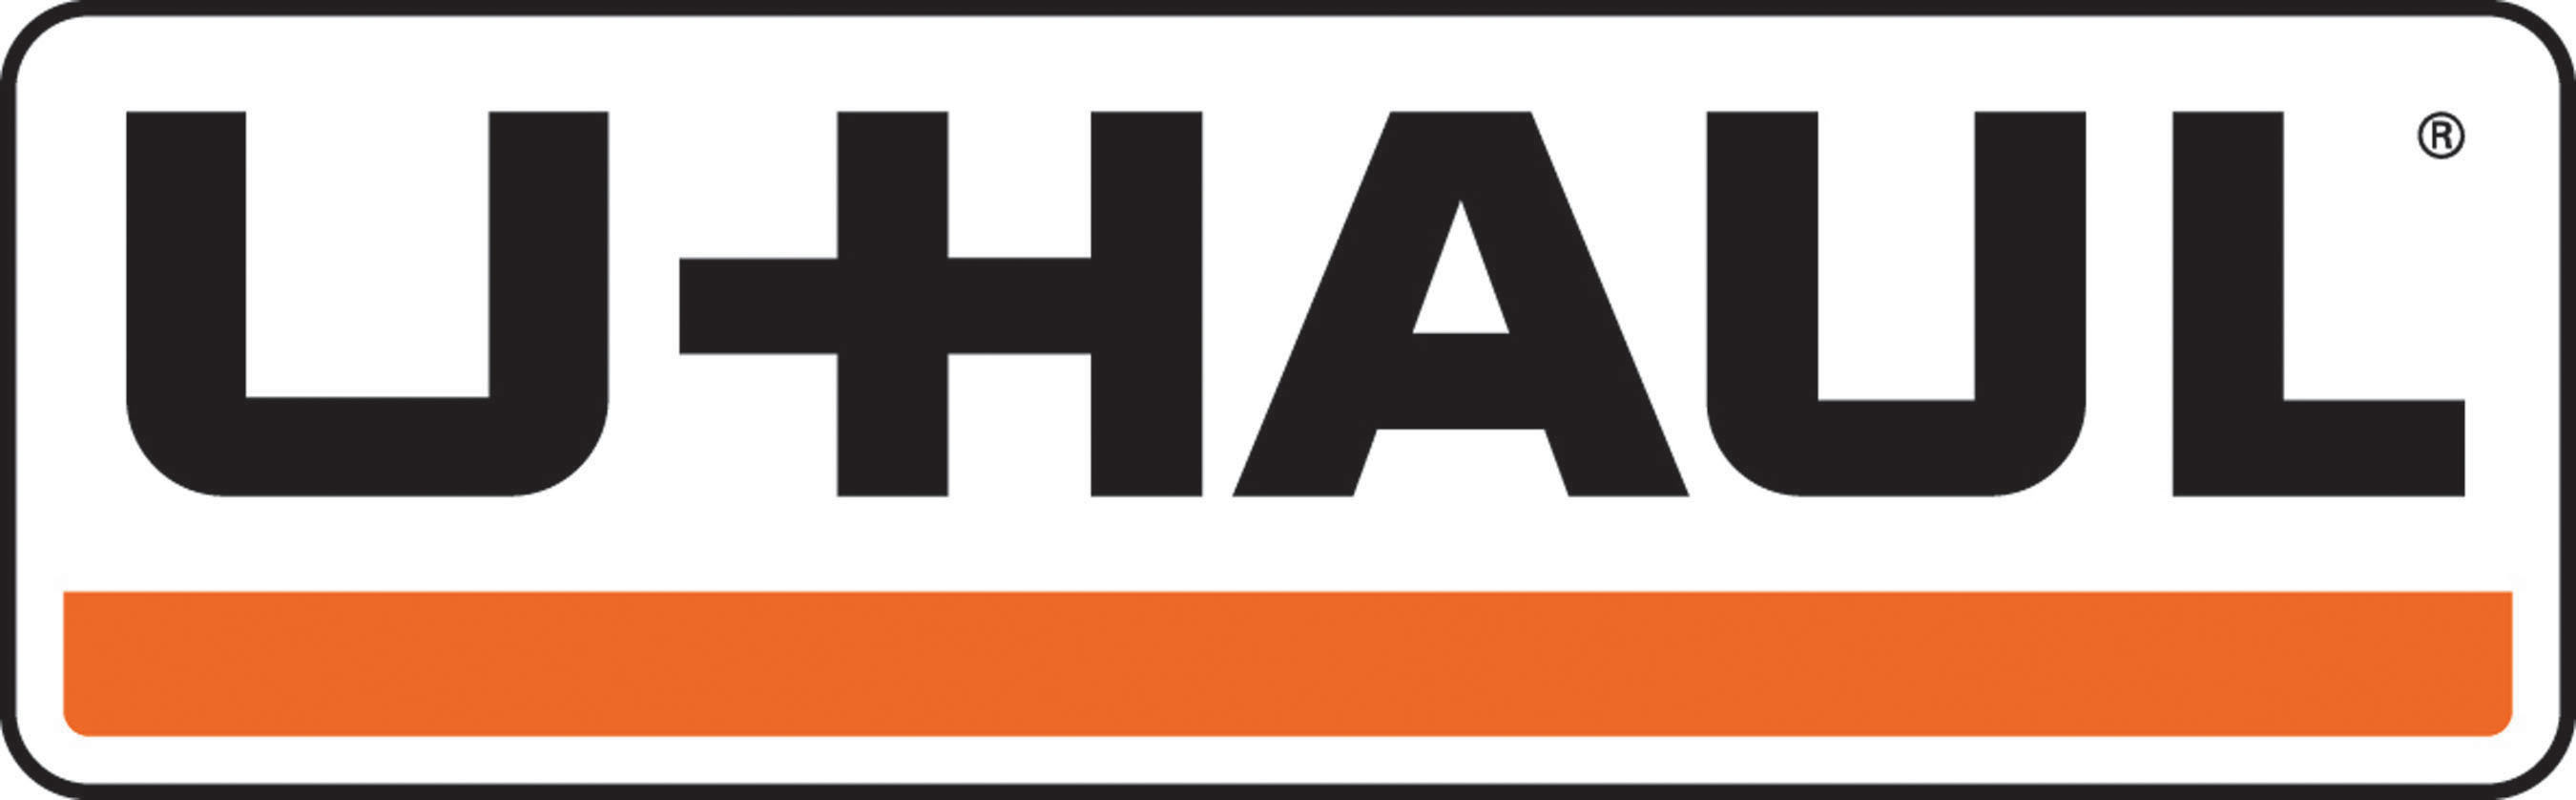 Campers And Tailgaters U Haul Introduces Refillable 1 Lb Propane